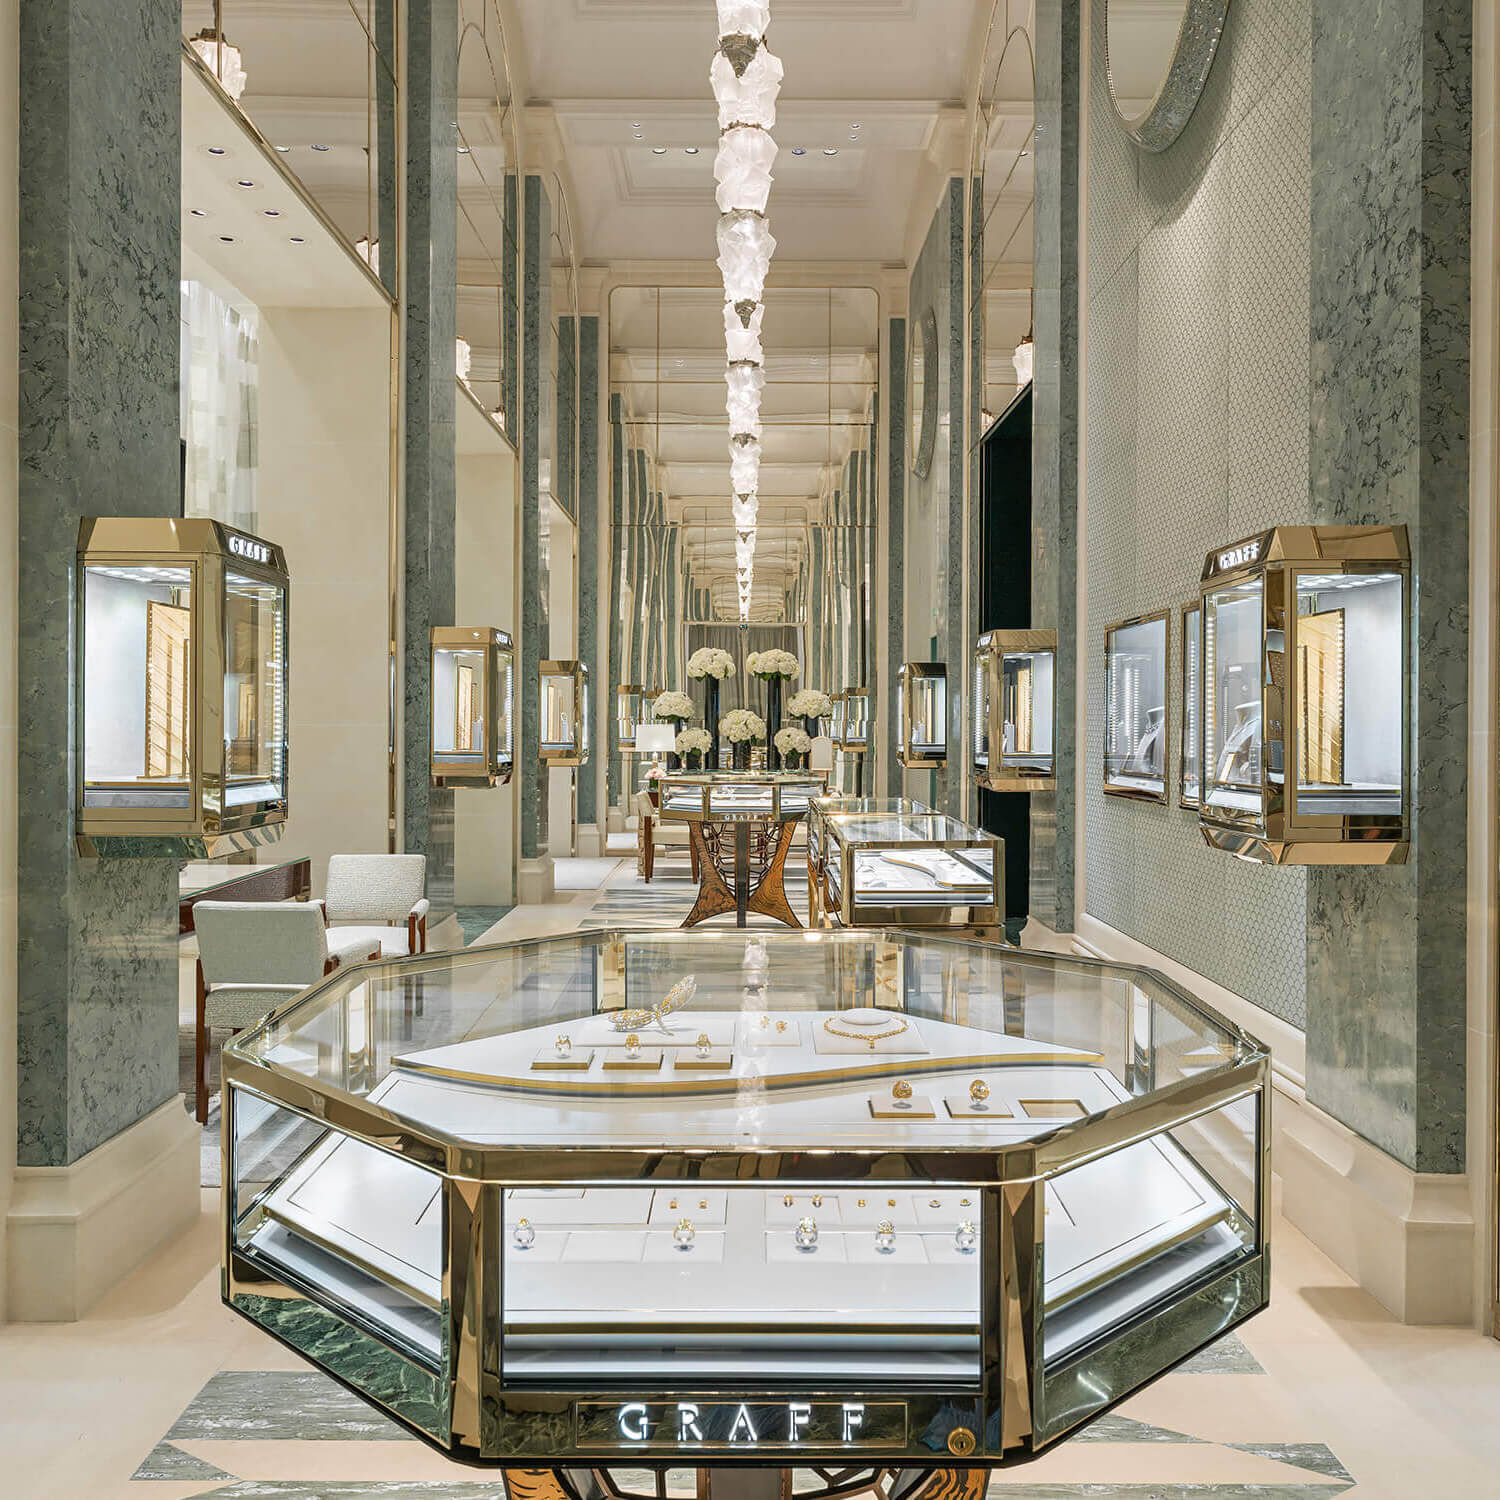 Interior of the Graff jewellery flagship boutique in Paris Rue Saint- Honoré, French